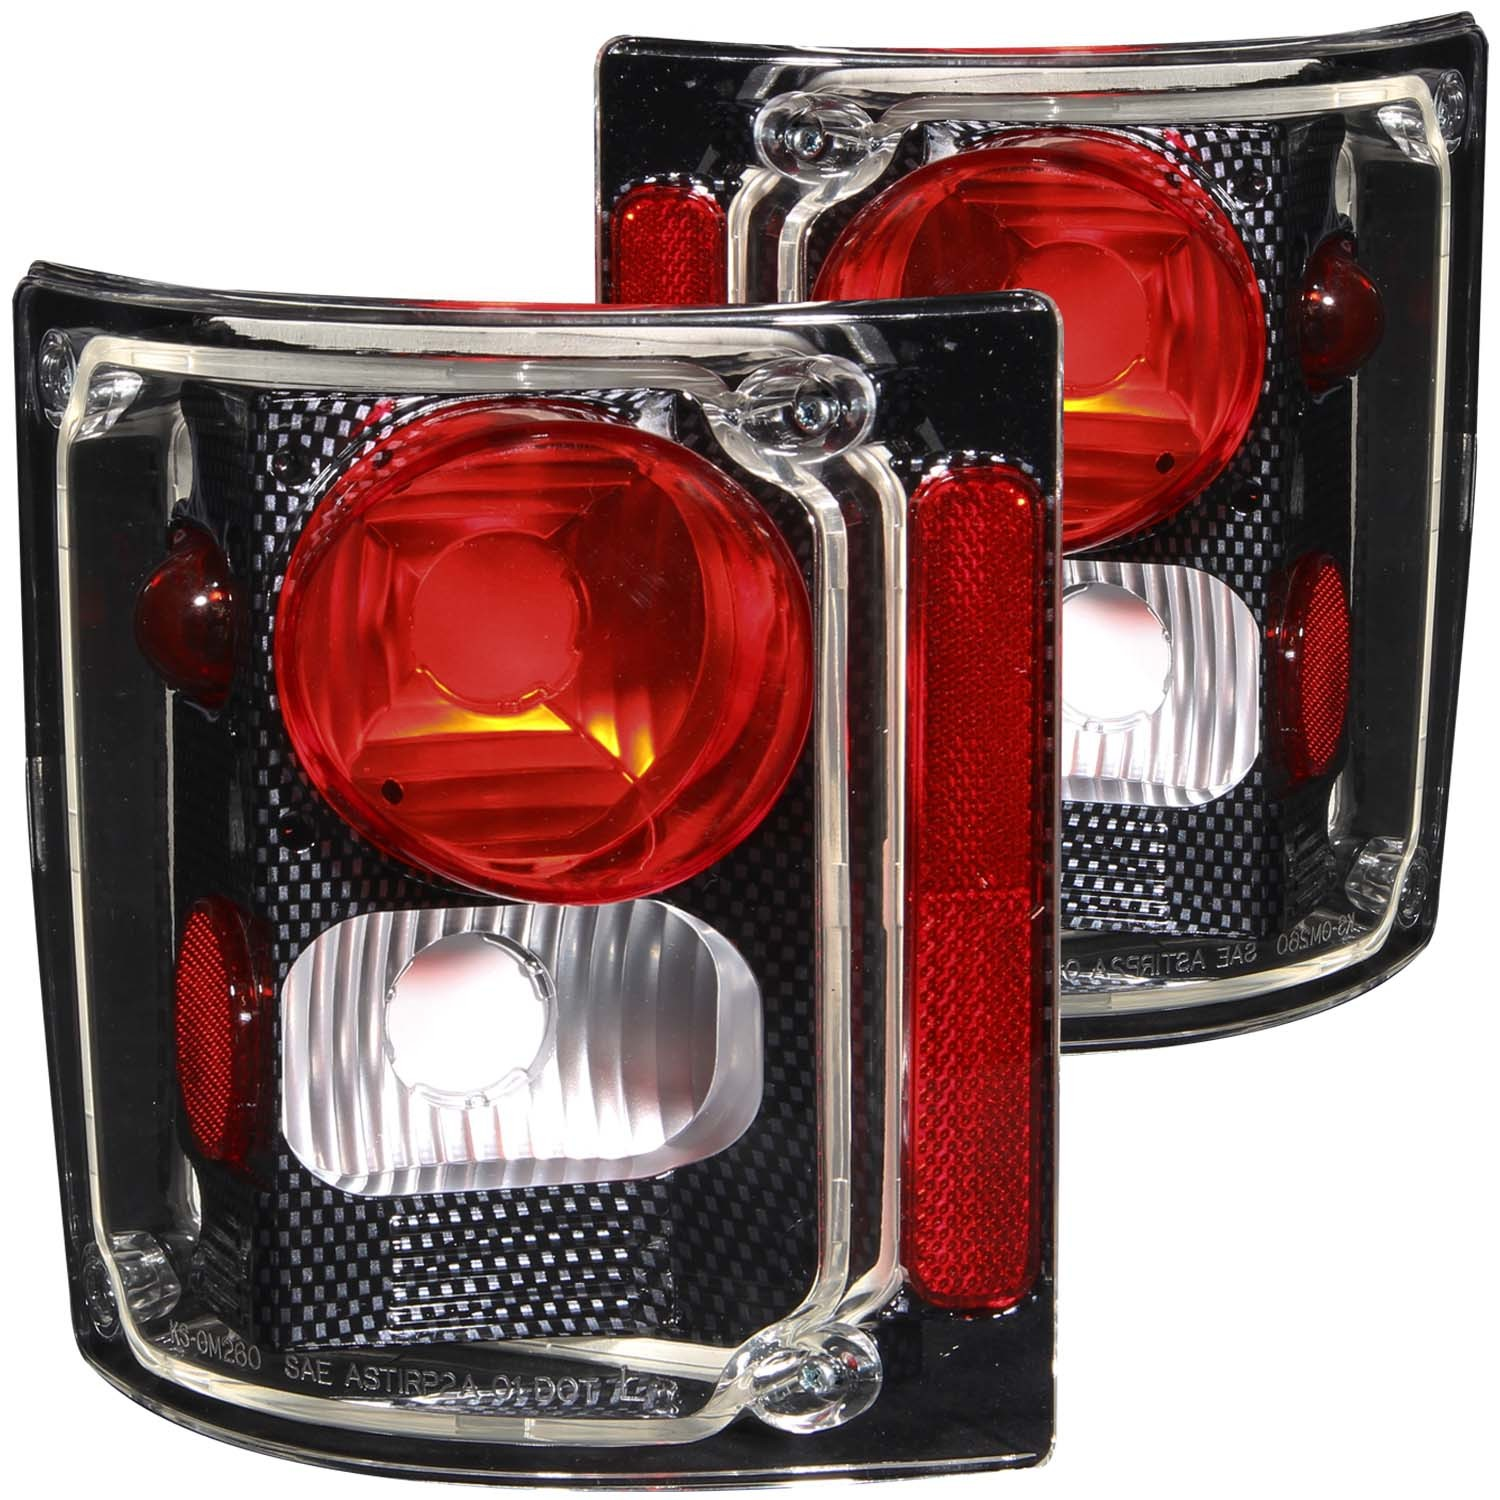 73 87 Chevy Led Tail Lights 98 Truck For Silverado Sierra 1500 Red 211015 11